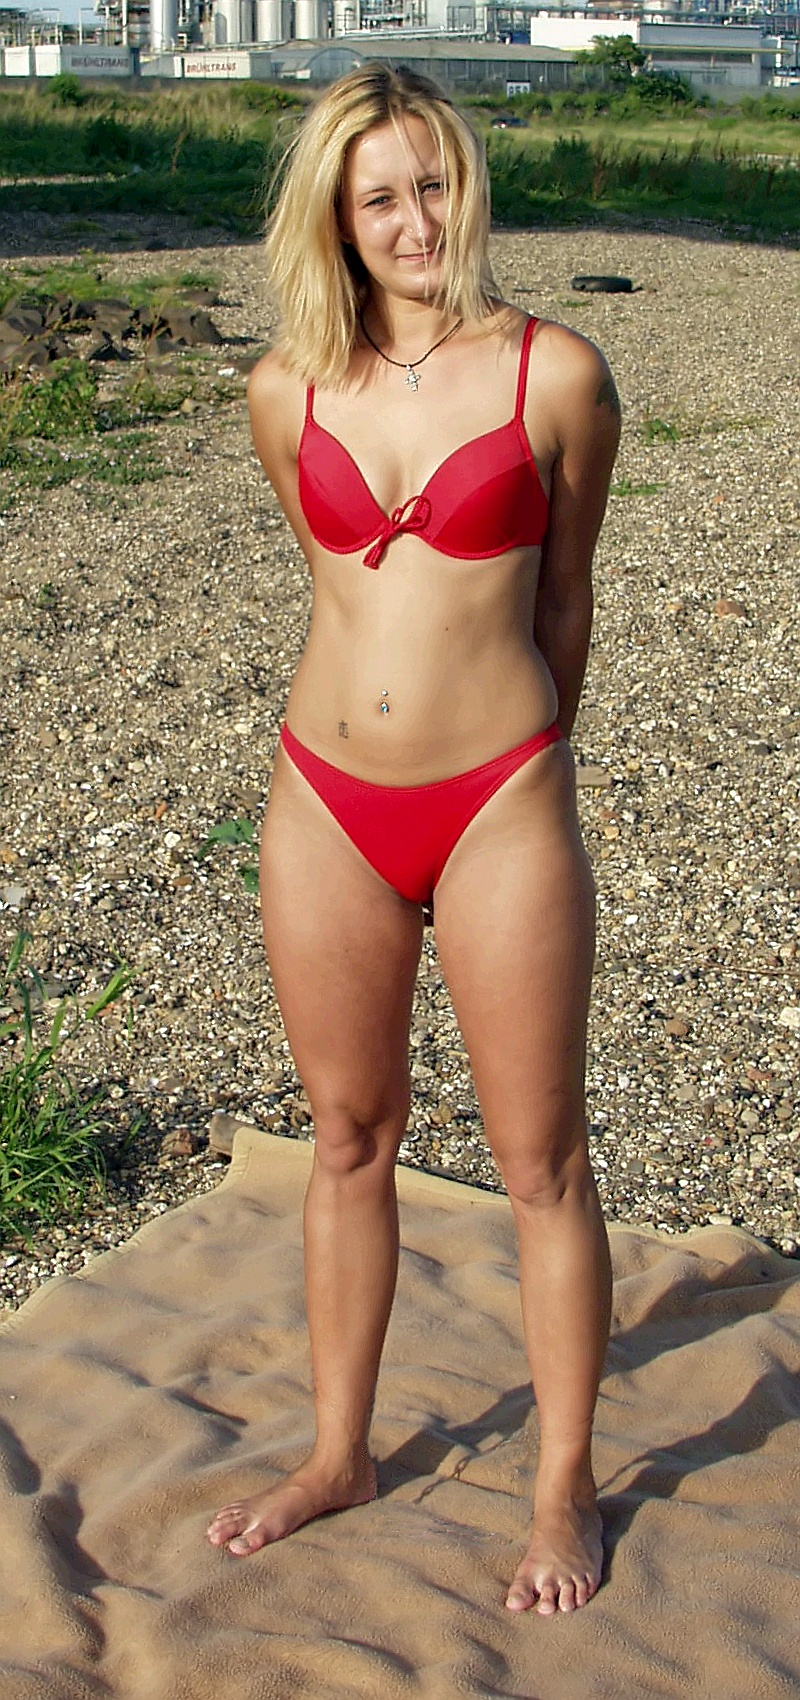 File:Bikini Model Jassi 3.jpg